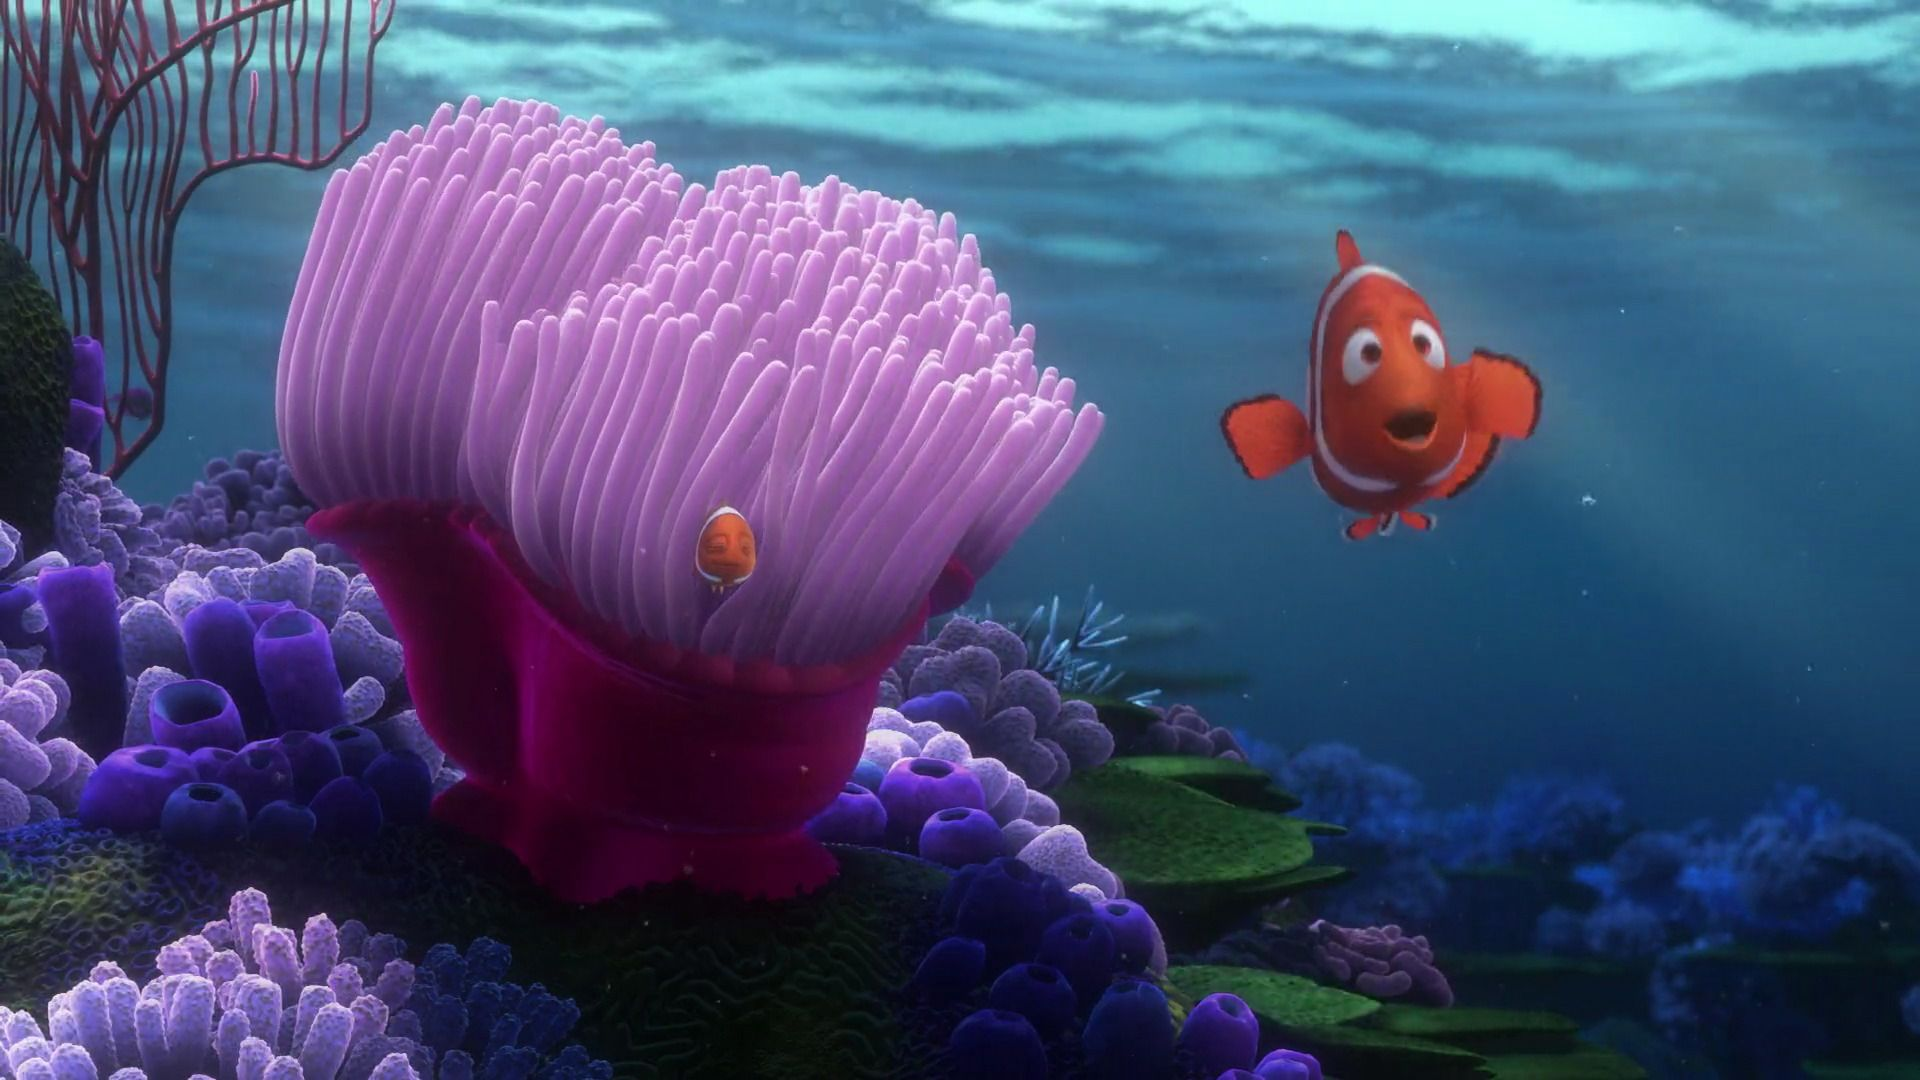 ced67dd178d59 Finding Nemo (2003) - Disney Screencaps.com